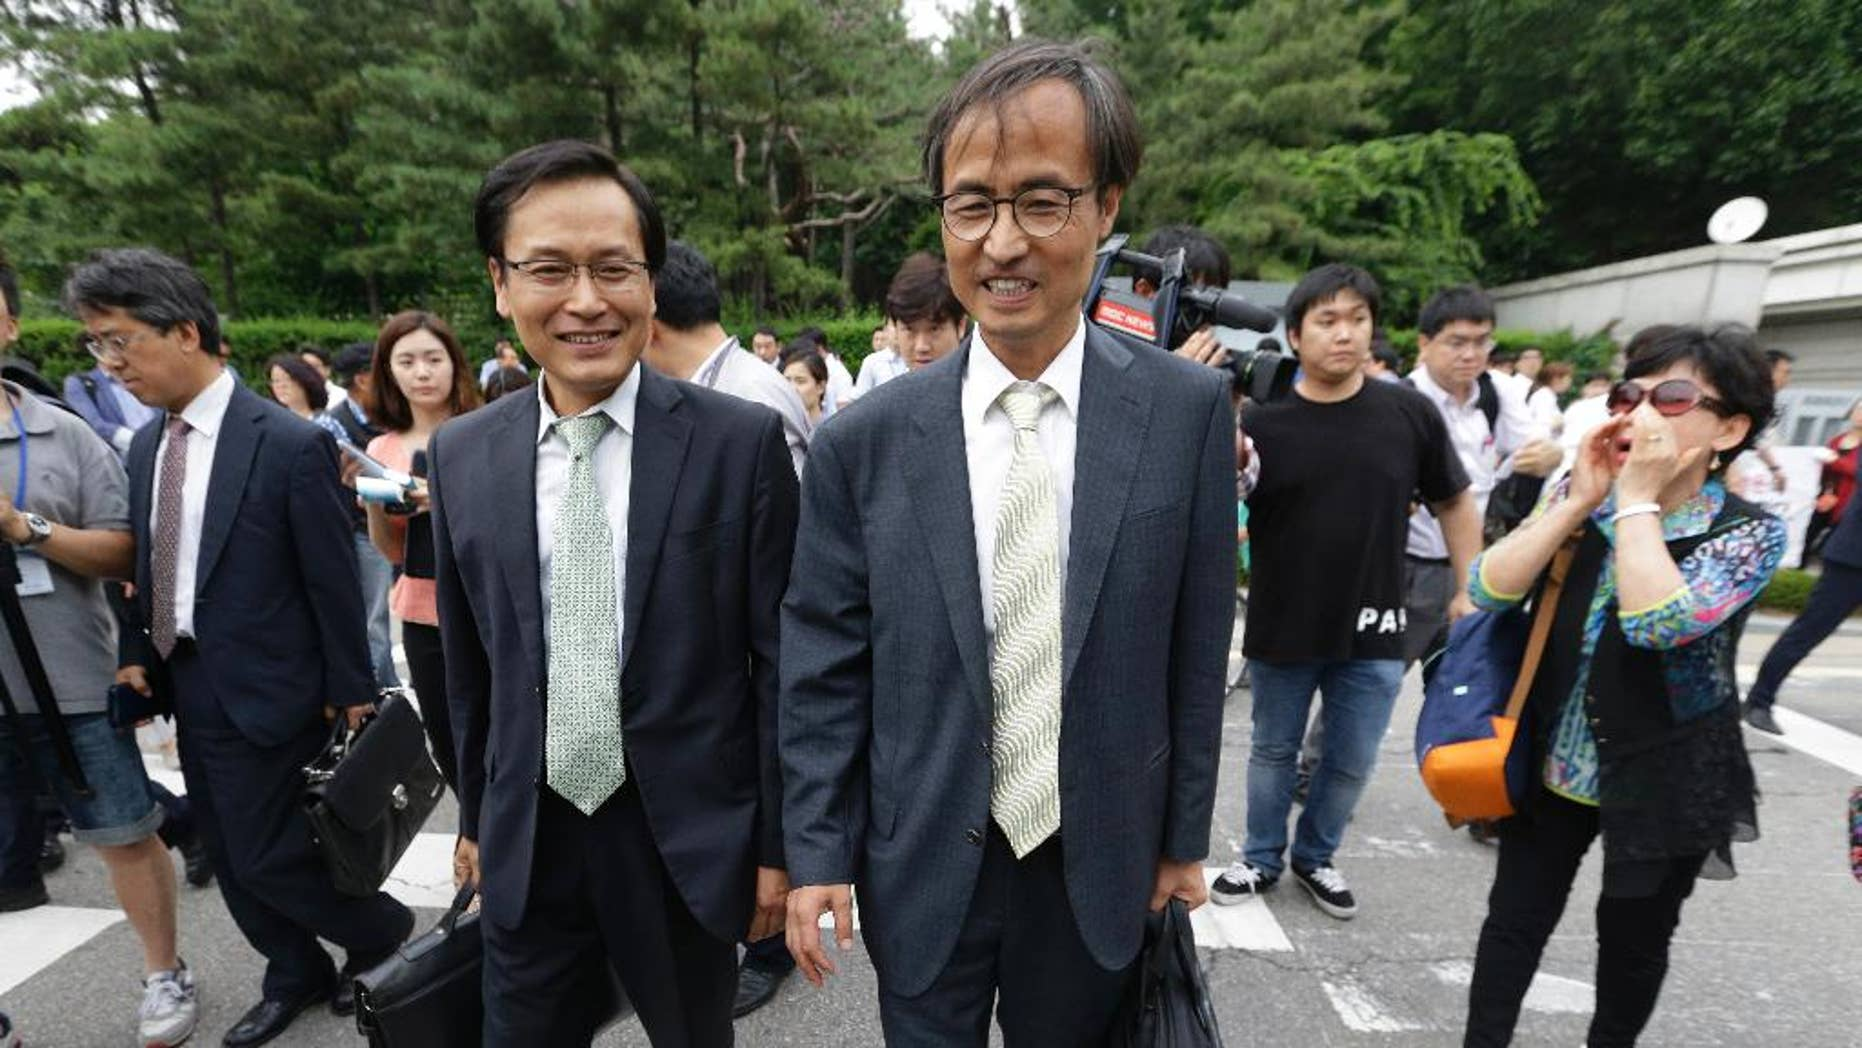 South Korean human right lawyers leave after a court hearing on the detention of North Korean defectors as an anti-North Korean protester, right, shouts to them in front of the Seoul District Court in Seoul, South Korea, Tuesday, June 21, 2016. As South Korea's main spy agency prepares a courtroom defense of its continued detention of 12 North Korean waitresses it says fled from China, Pyongyang is using the women's relatives and colleagues to step up its accusations that they were tricked into leaving their jobs and essentially kidnapped.(AP Photo/Ahn Young-joon)